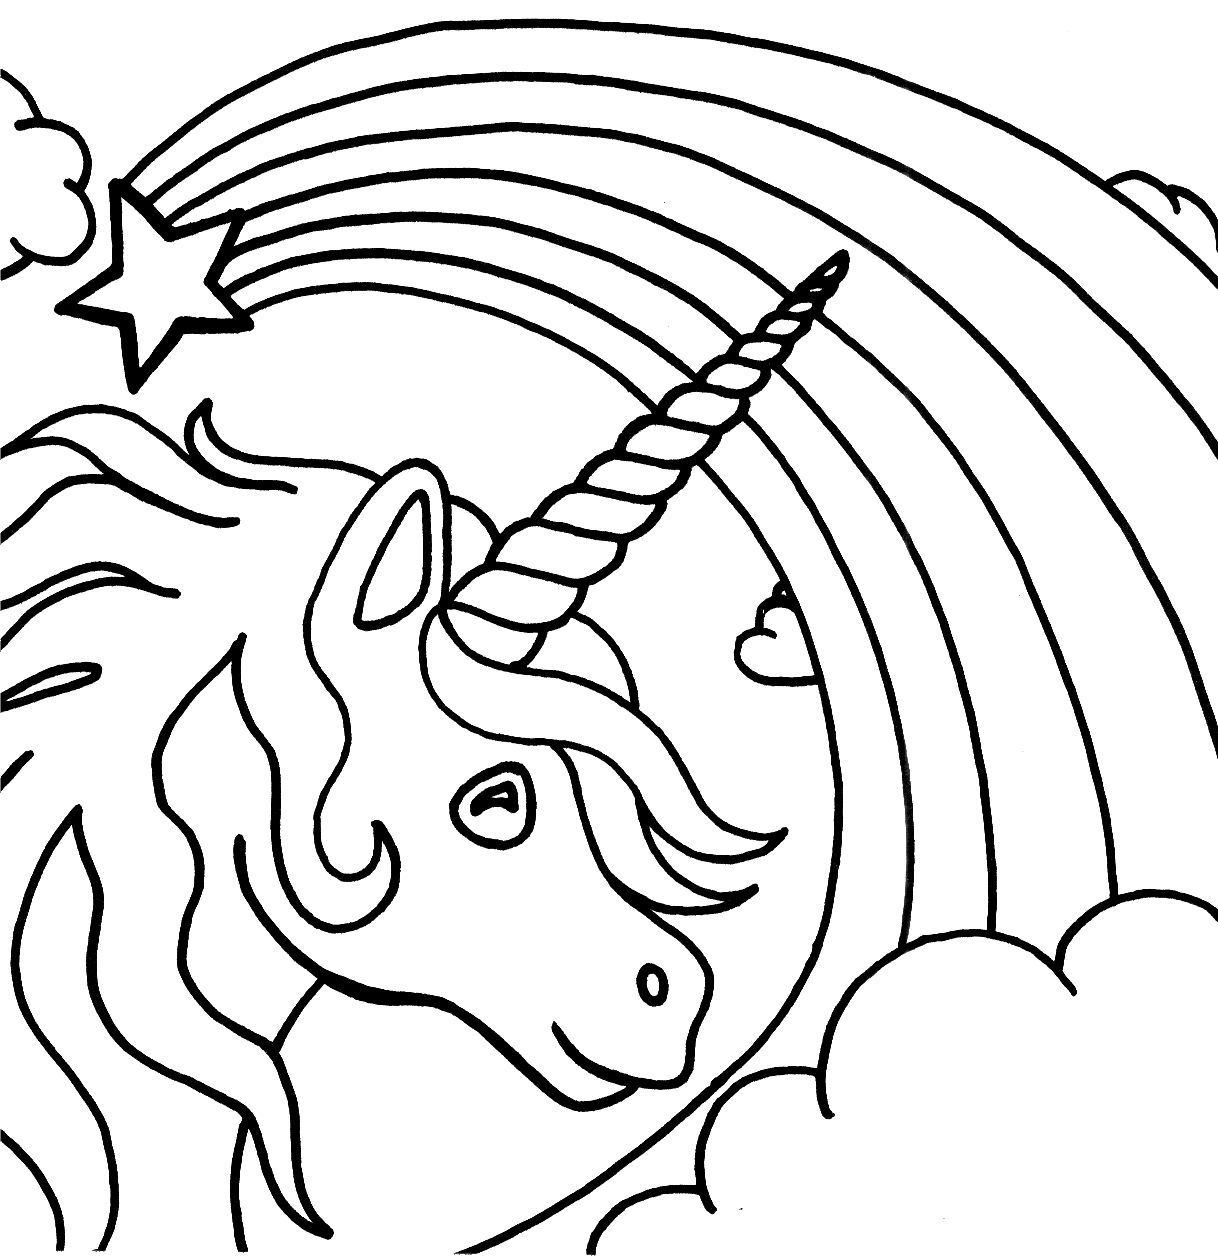 unicorn coloring unicorn drawing book drawing outline free download on clipartmag unicorn drawing unicorn coloring